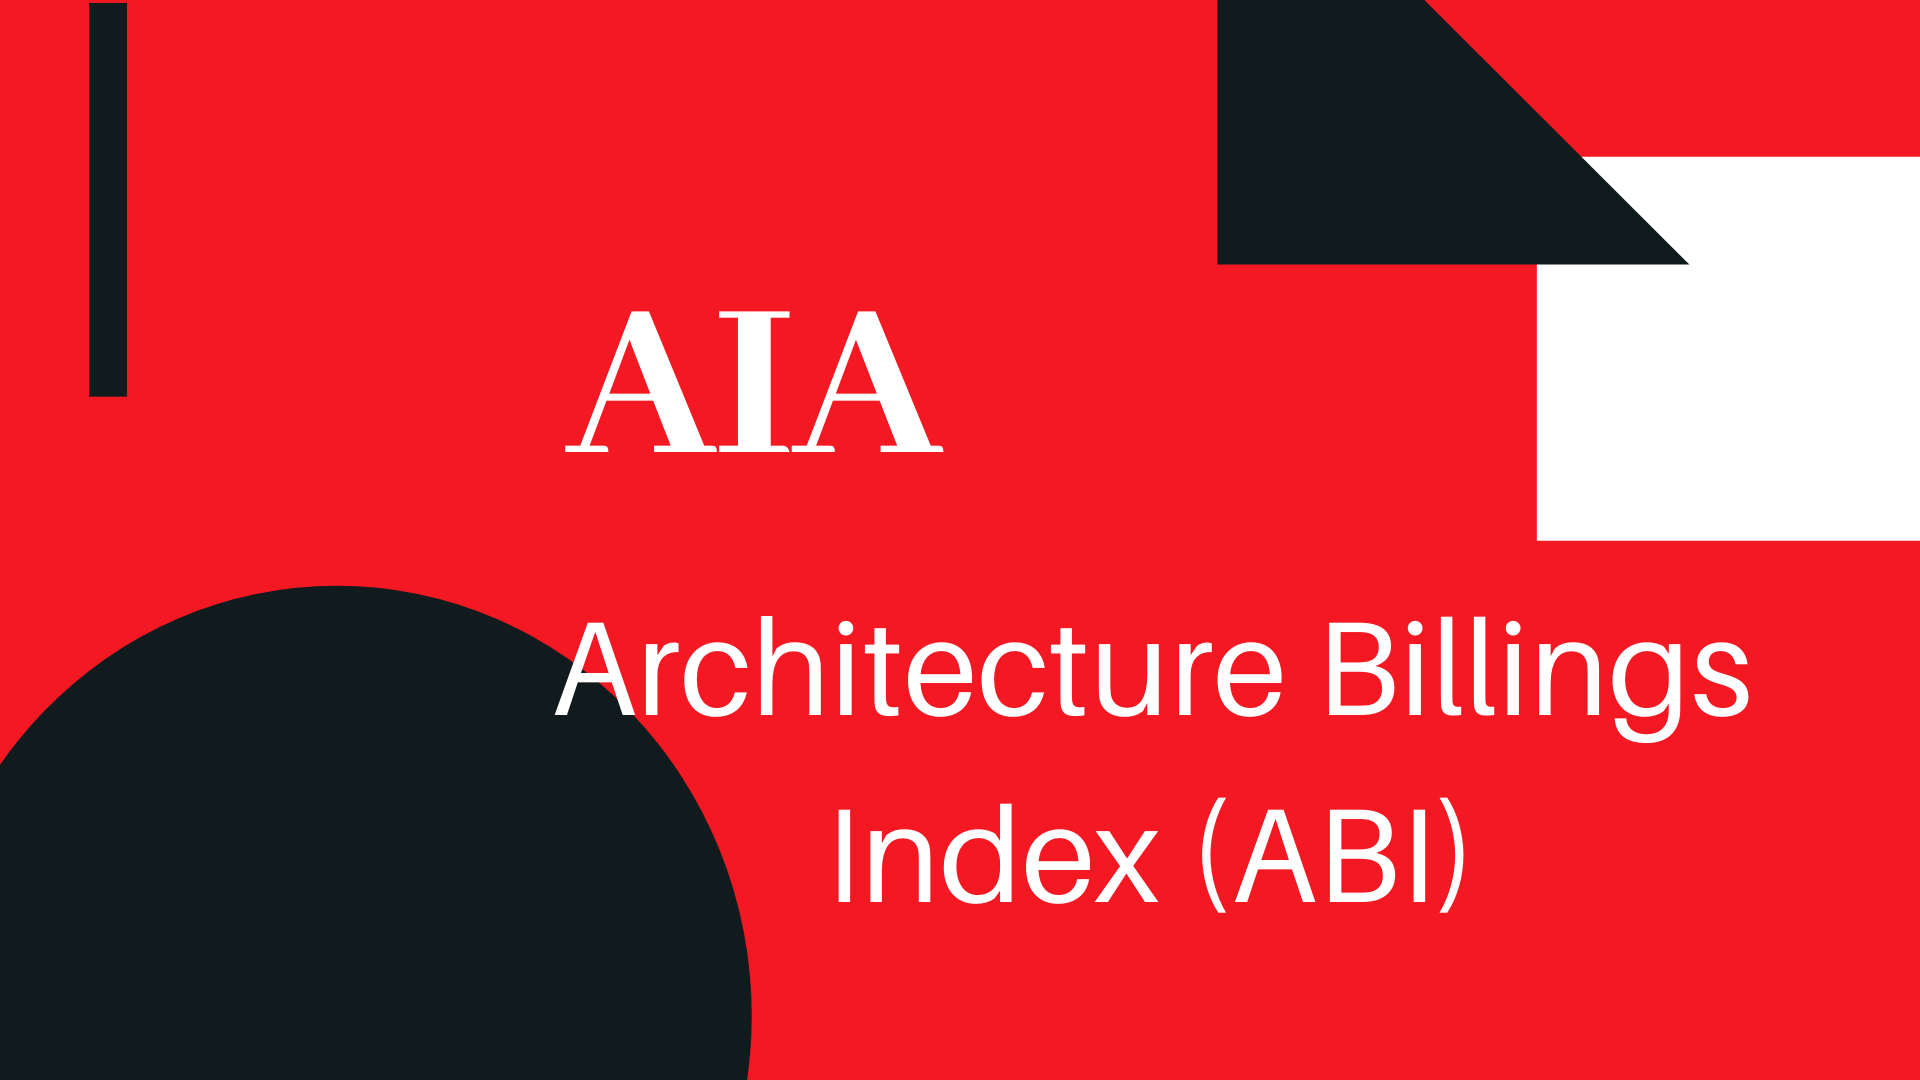 Architecture Billings Index continues to show modest growth